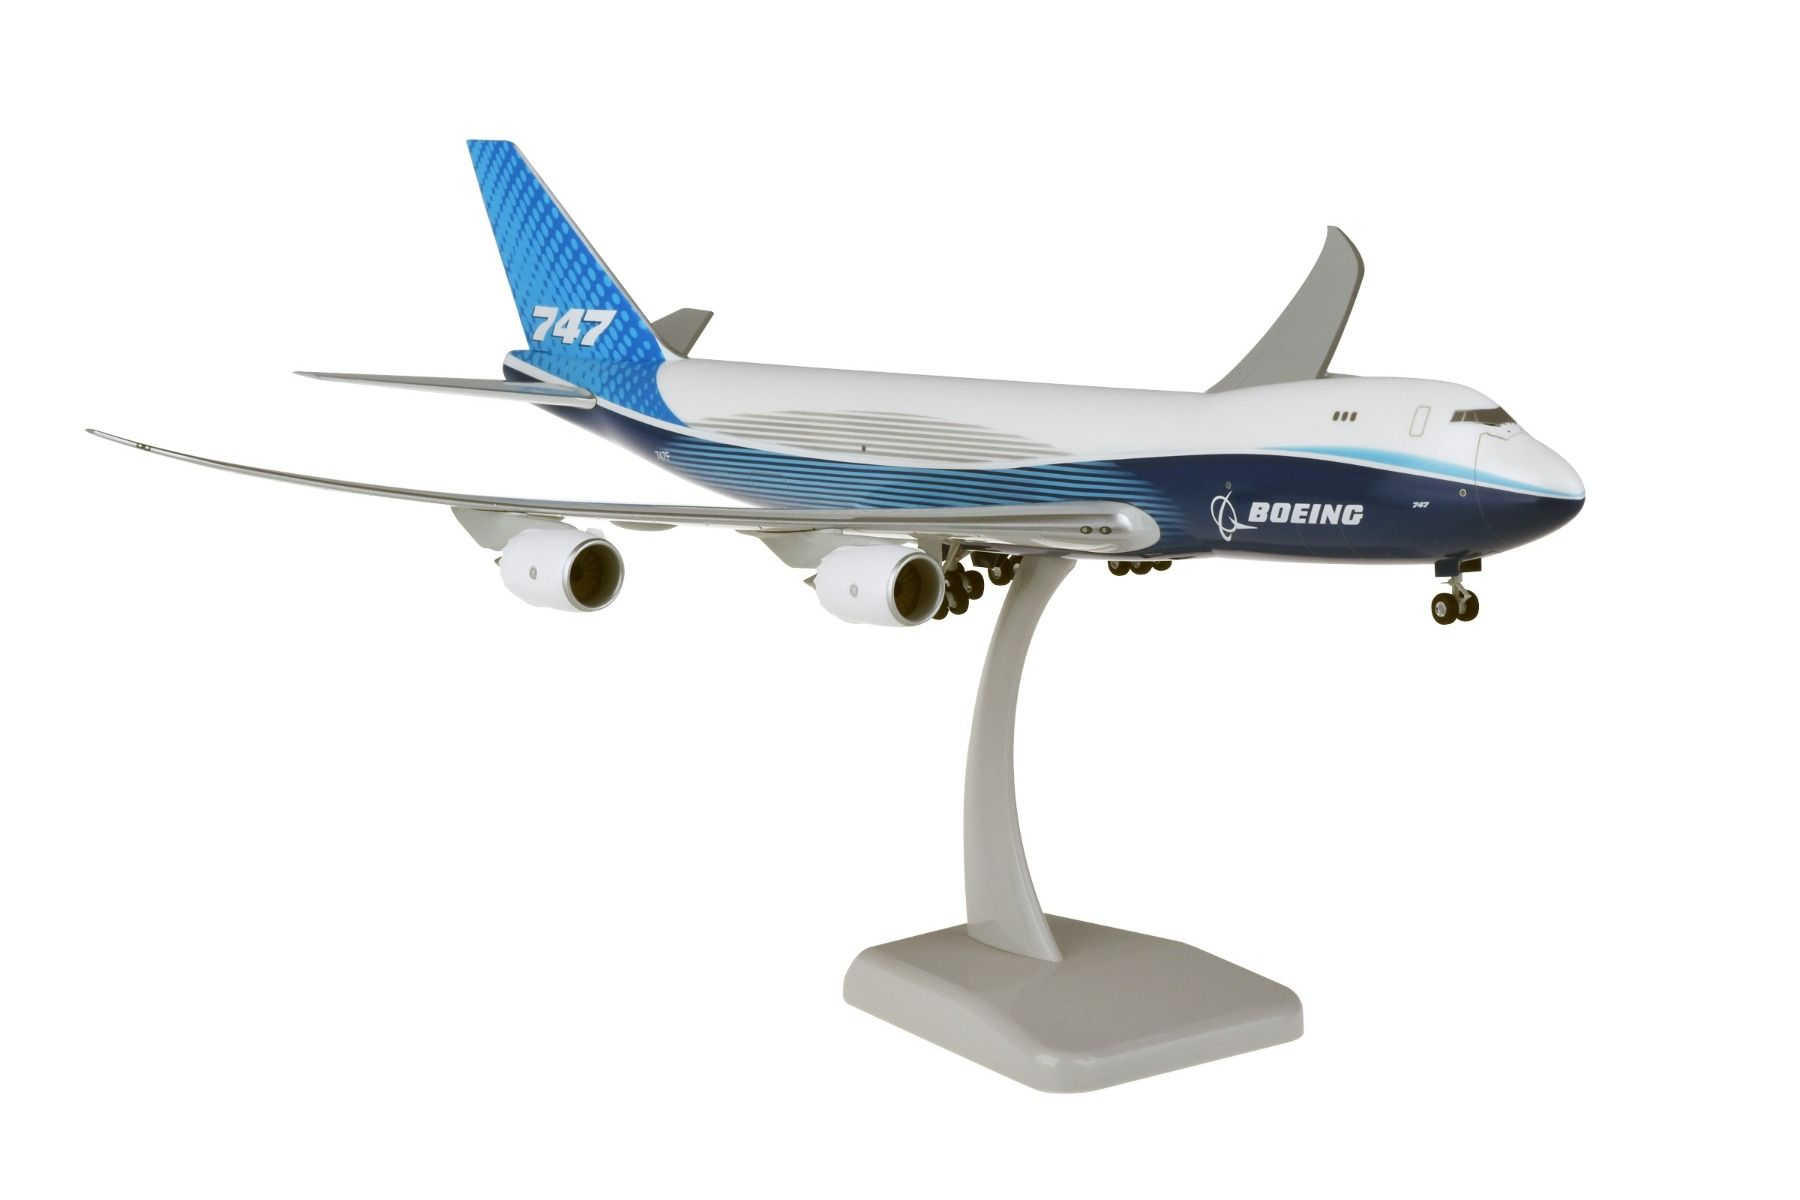 Boeing House 747-8F With Gear New Livery 2019 (1:200)